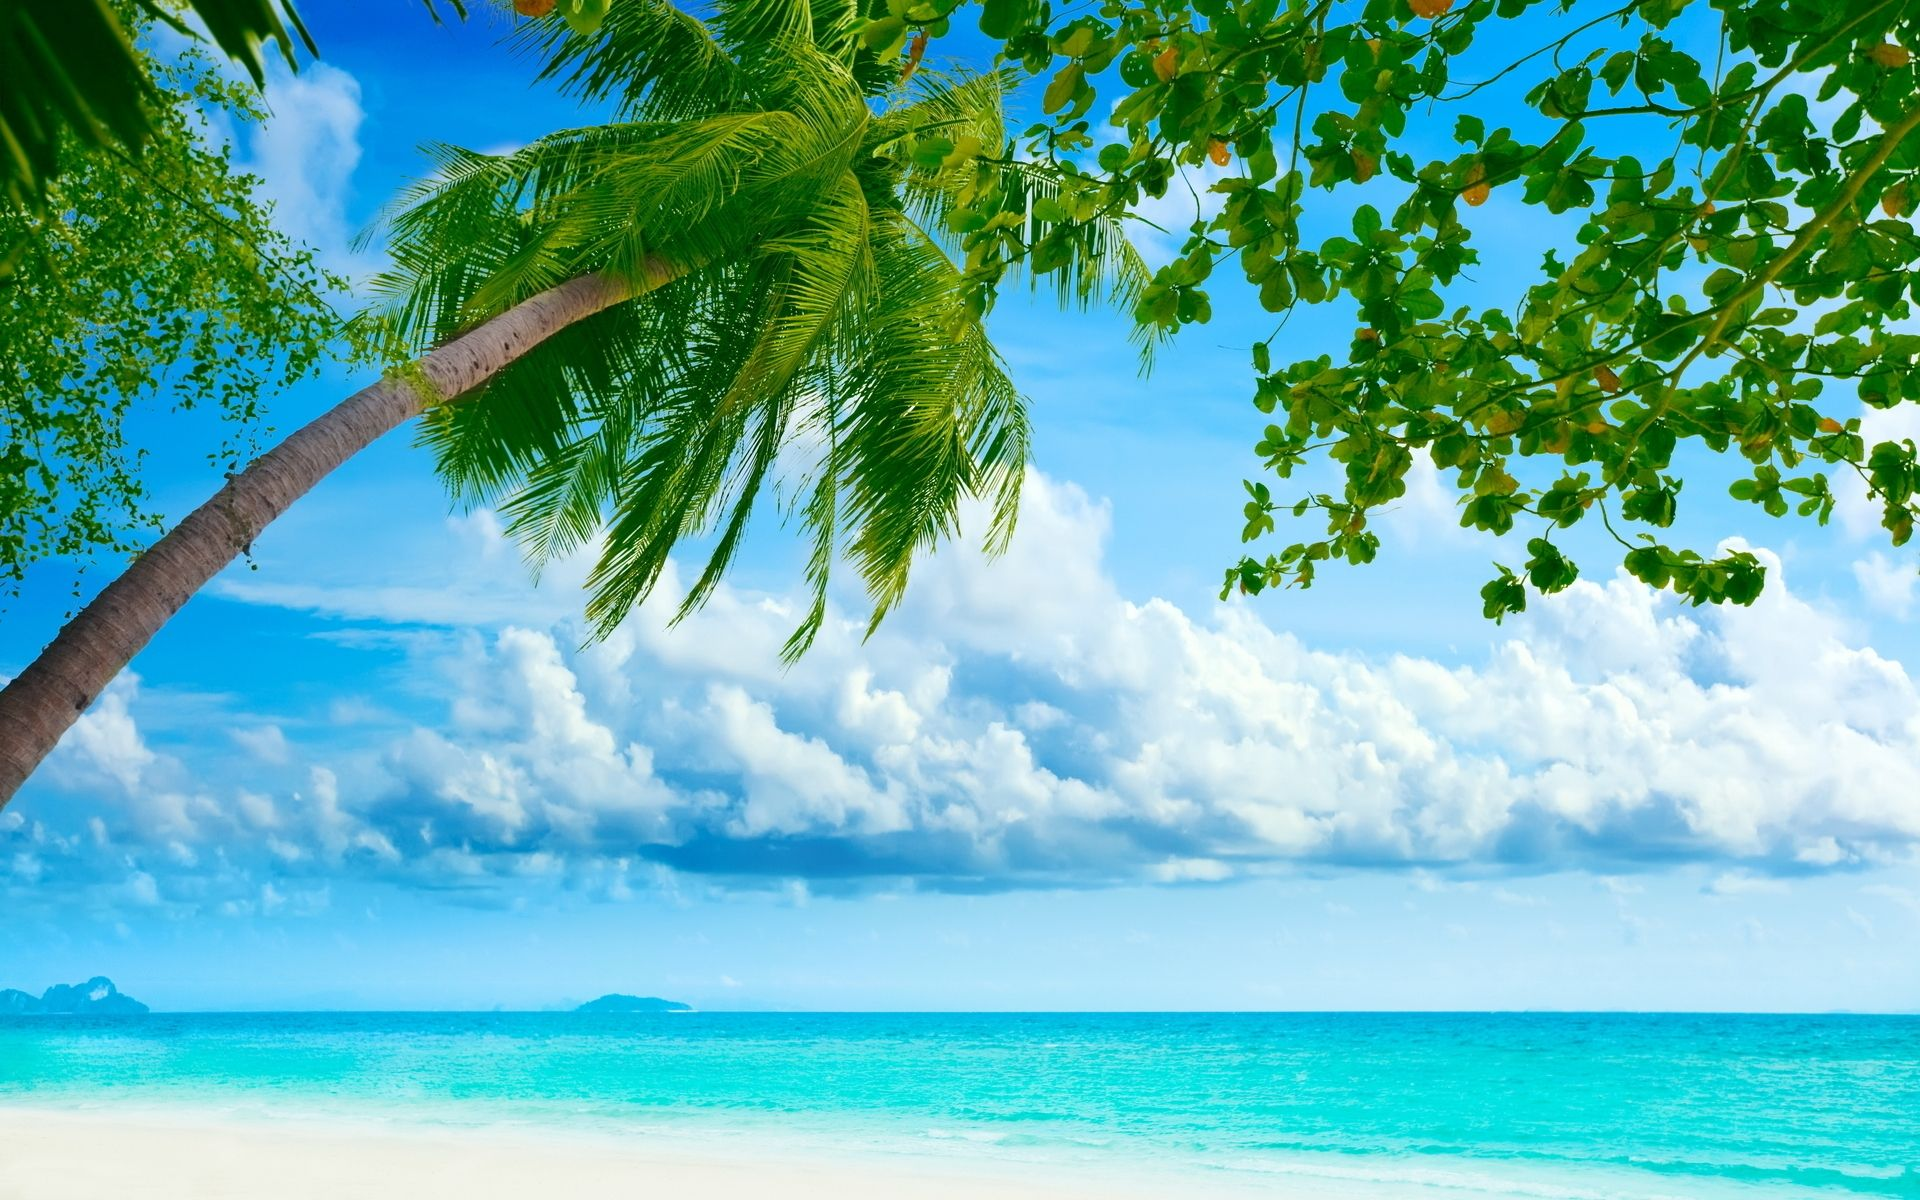 Make Bing Picture My Background beach desktop wallpapers